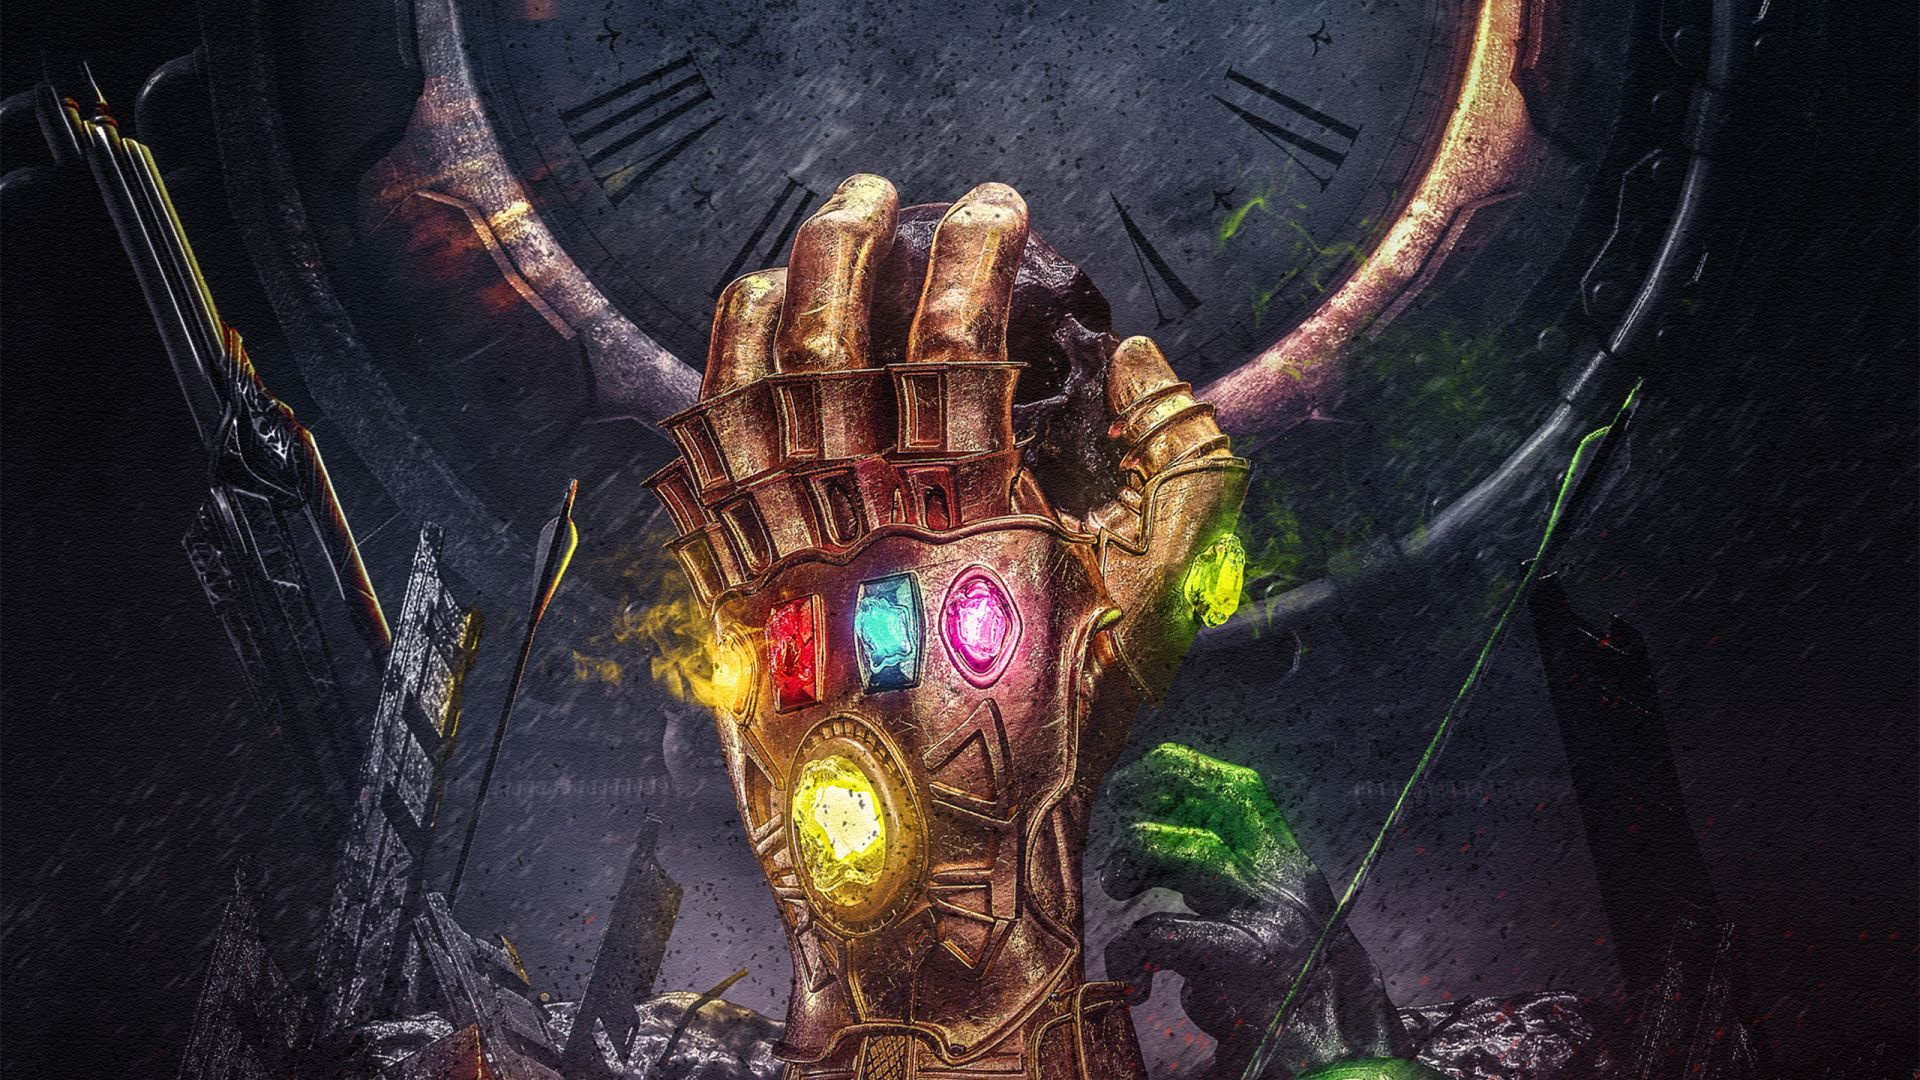 Download Wallpapers Of Infinity Gauntlet Thanos Infinity Stones